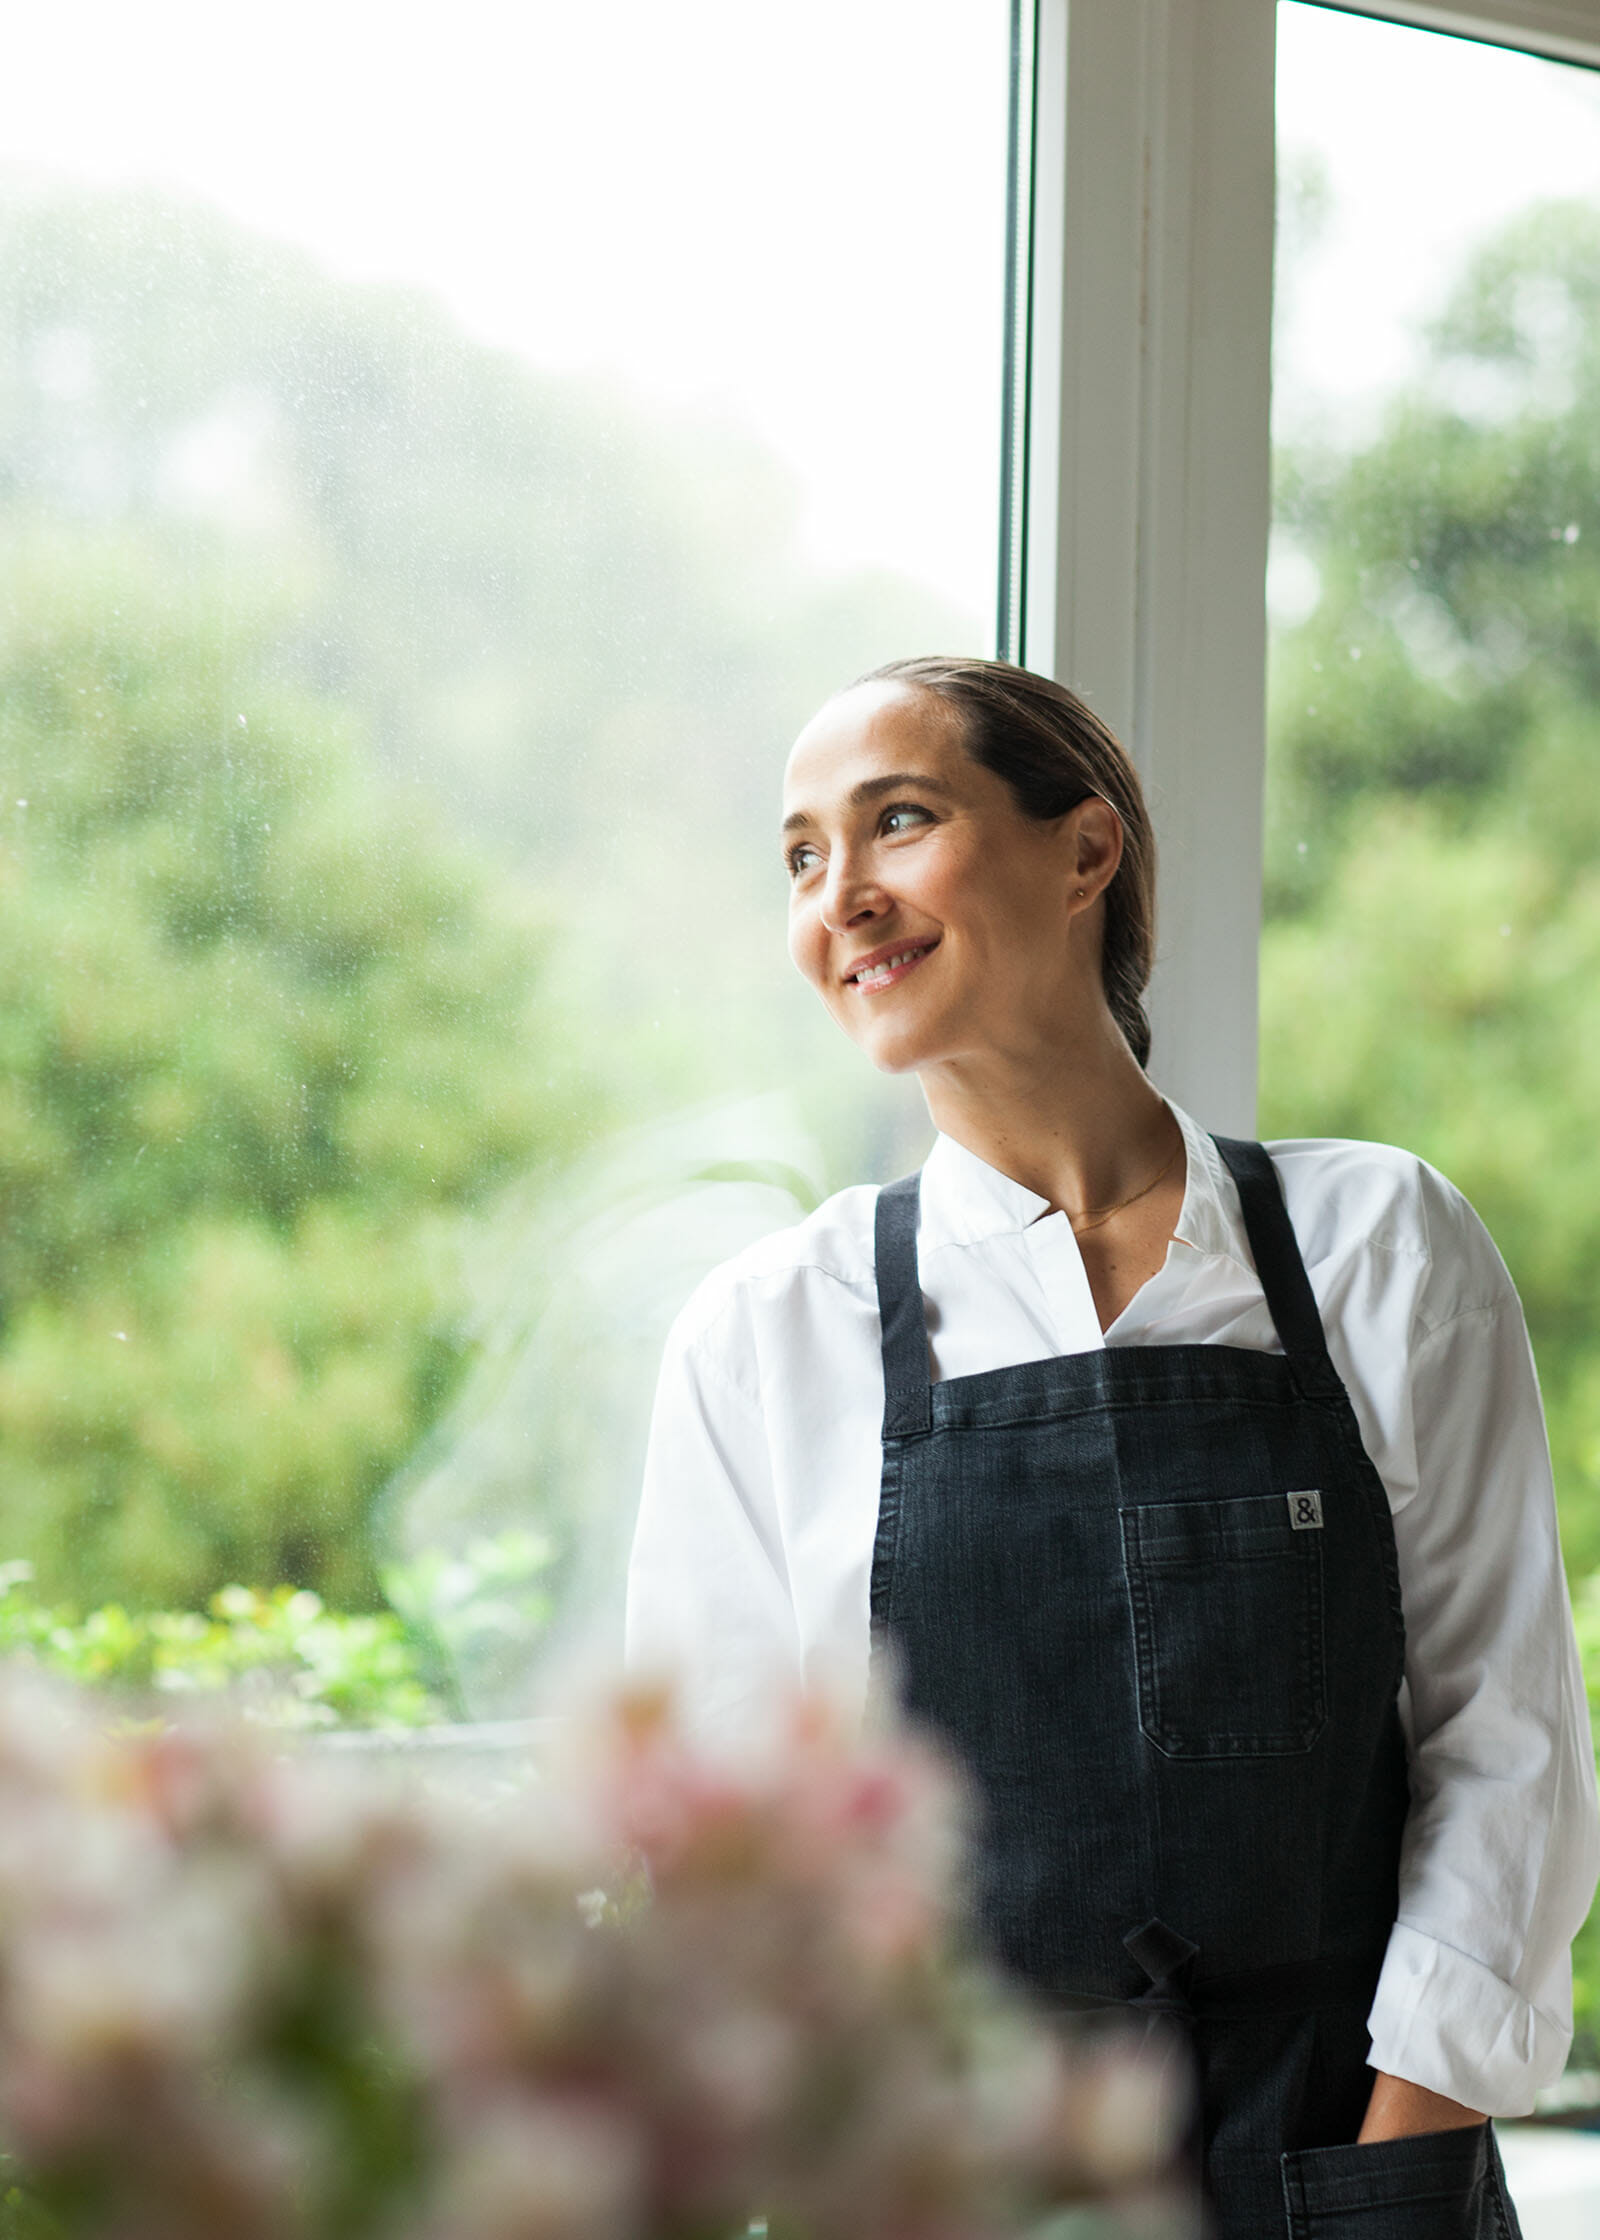 Author Gabriela Camara looking out the window and smiling.